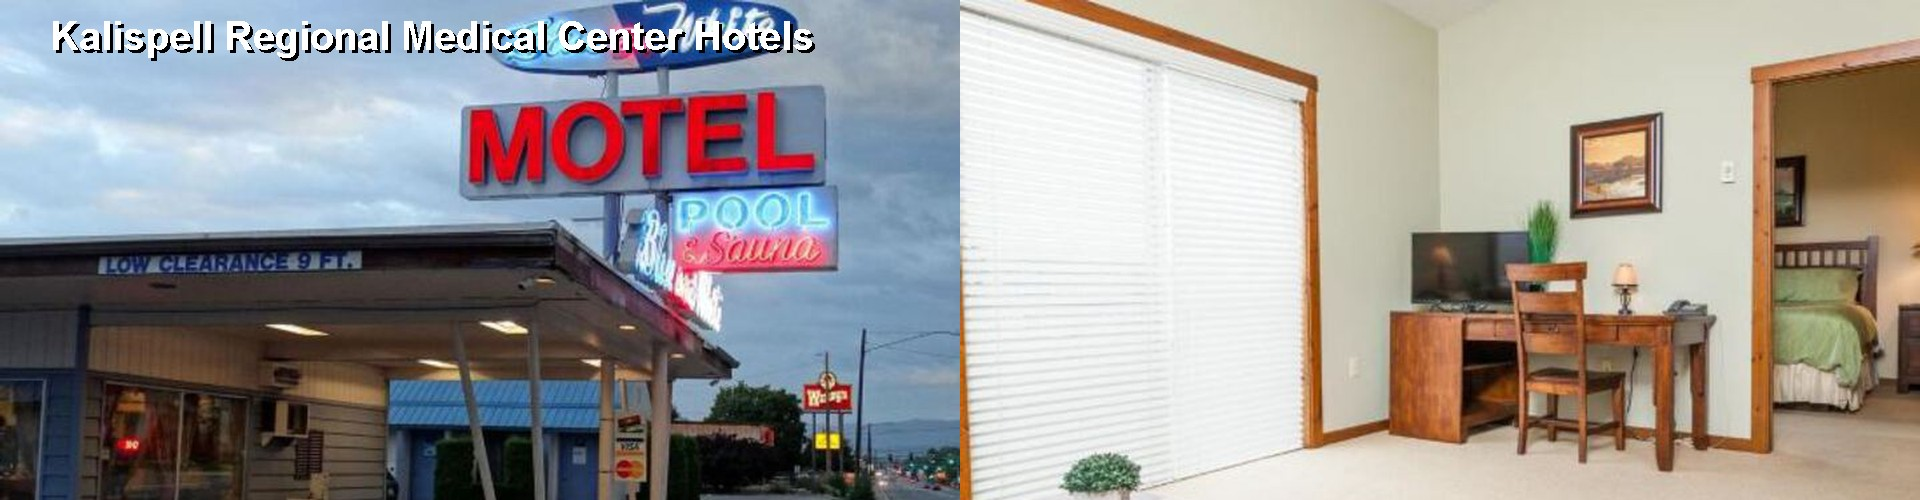 5 Best Hotels near Kalispell Regional Medical Center